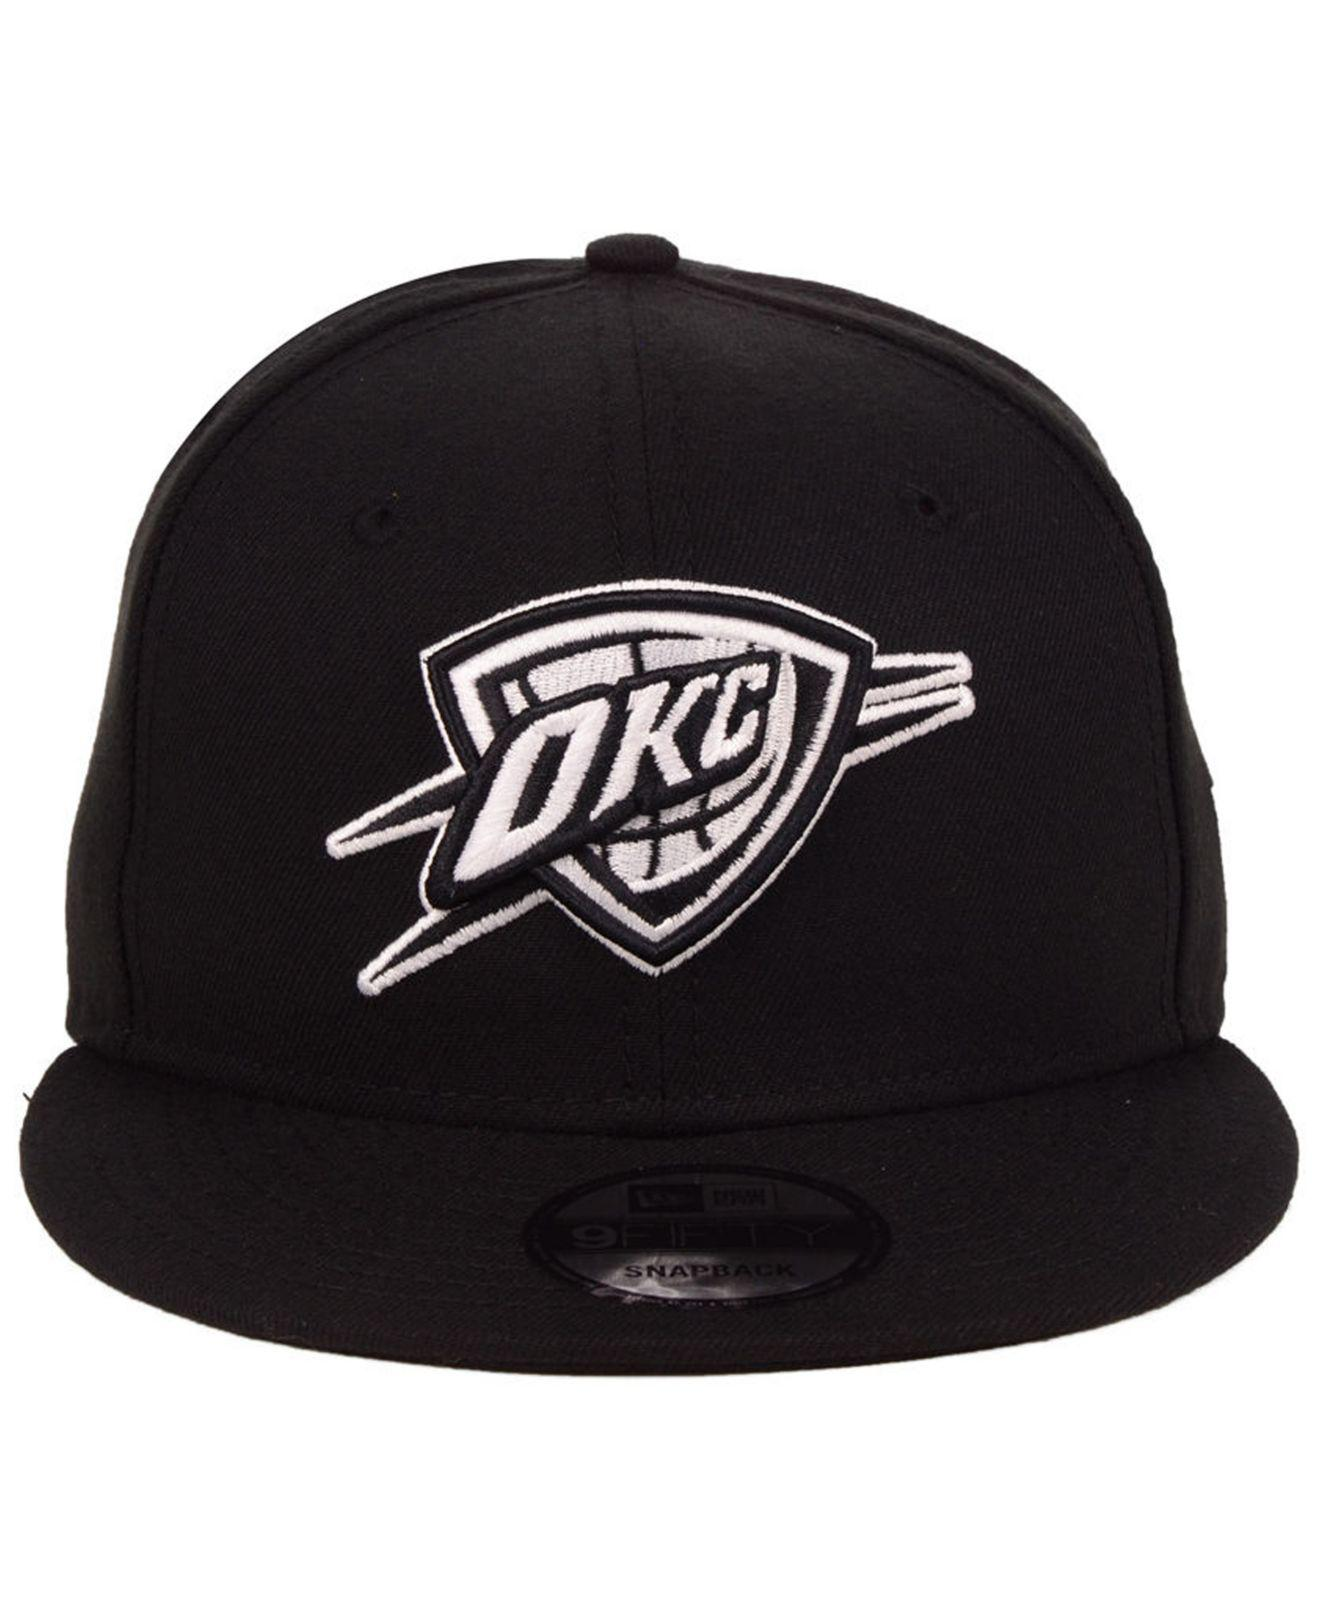 check out 2acaf 07e31 ... usa lyst ktz oklahoma city thunder black white 9fifty snapback cap in  black for men 83446